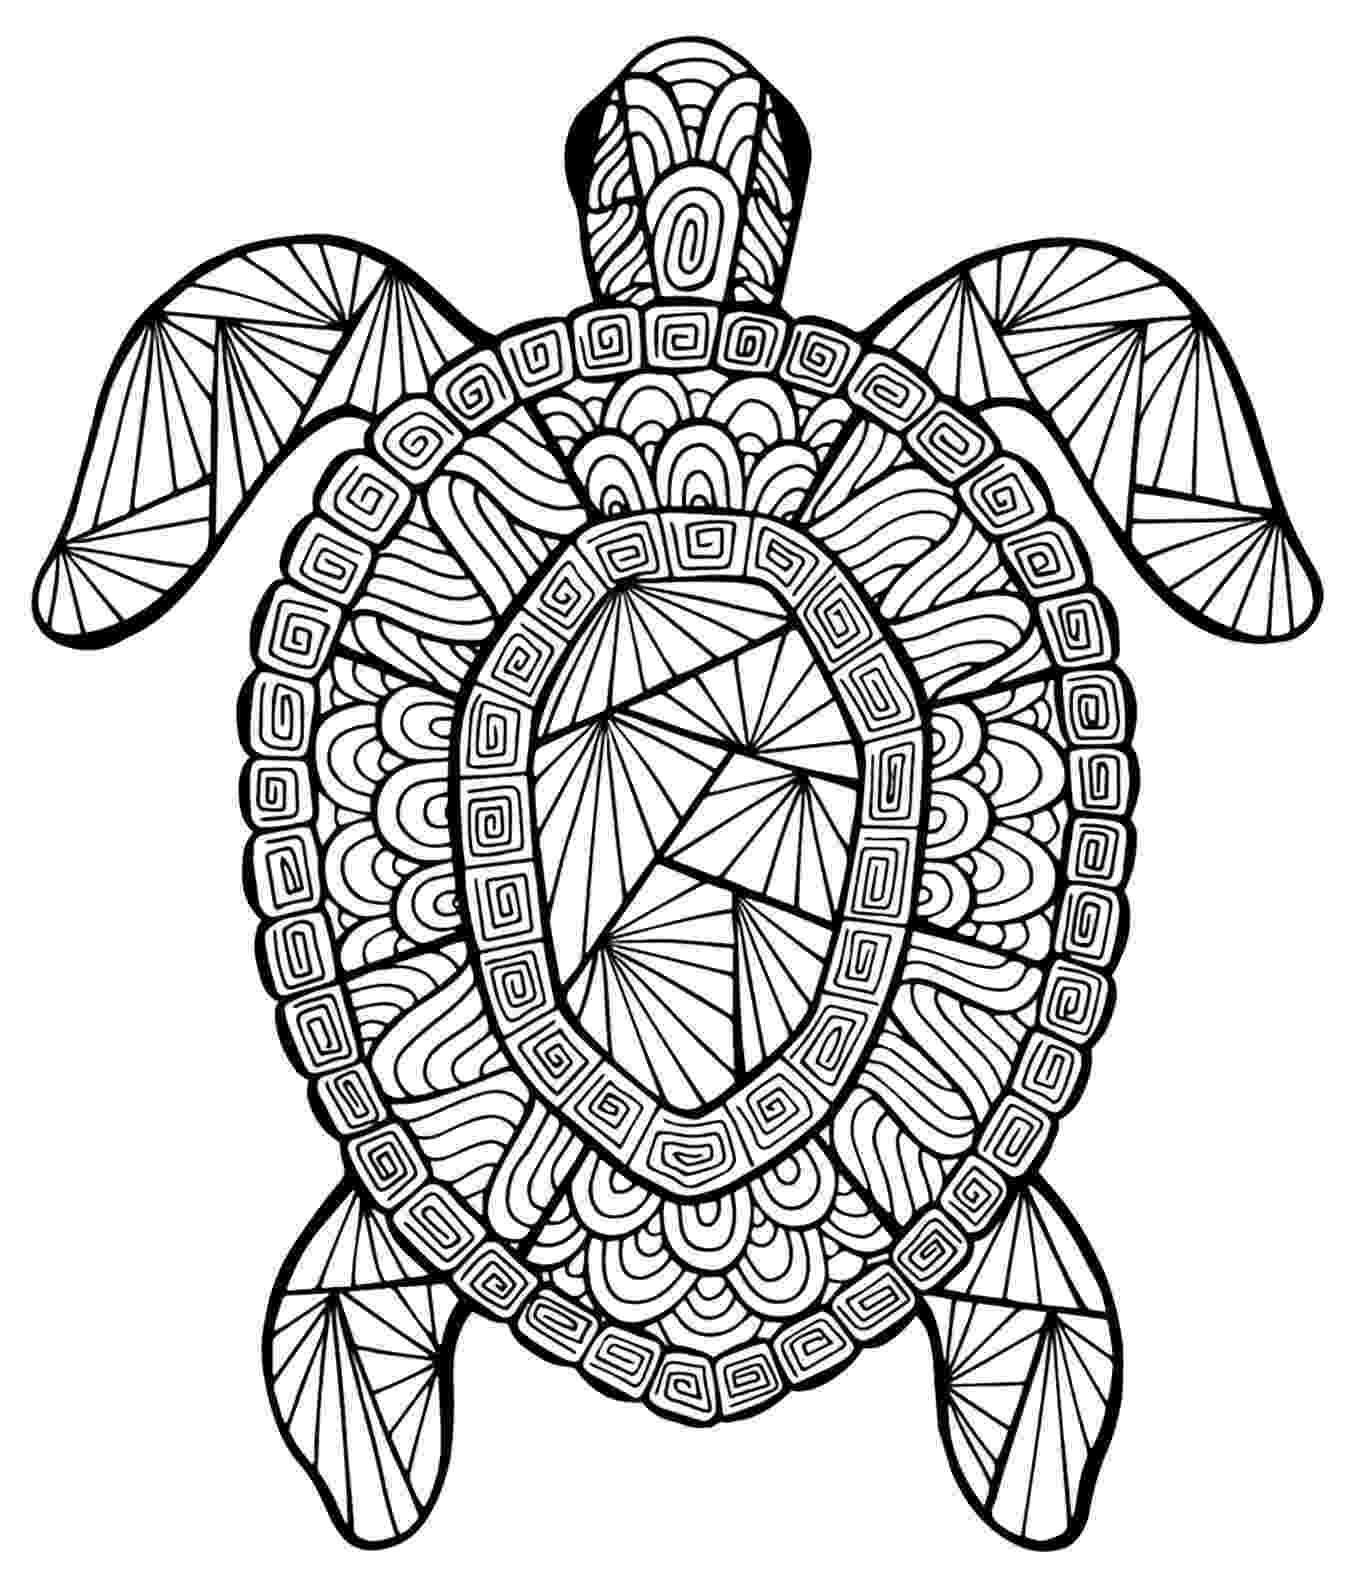 hard animal coloring pages hard animal pattern coloring pages getcoloringpagescom animal coloring pages hard